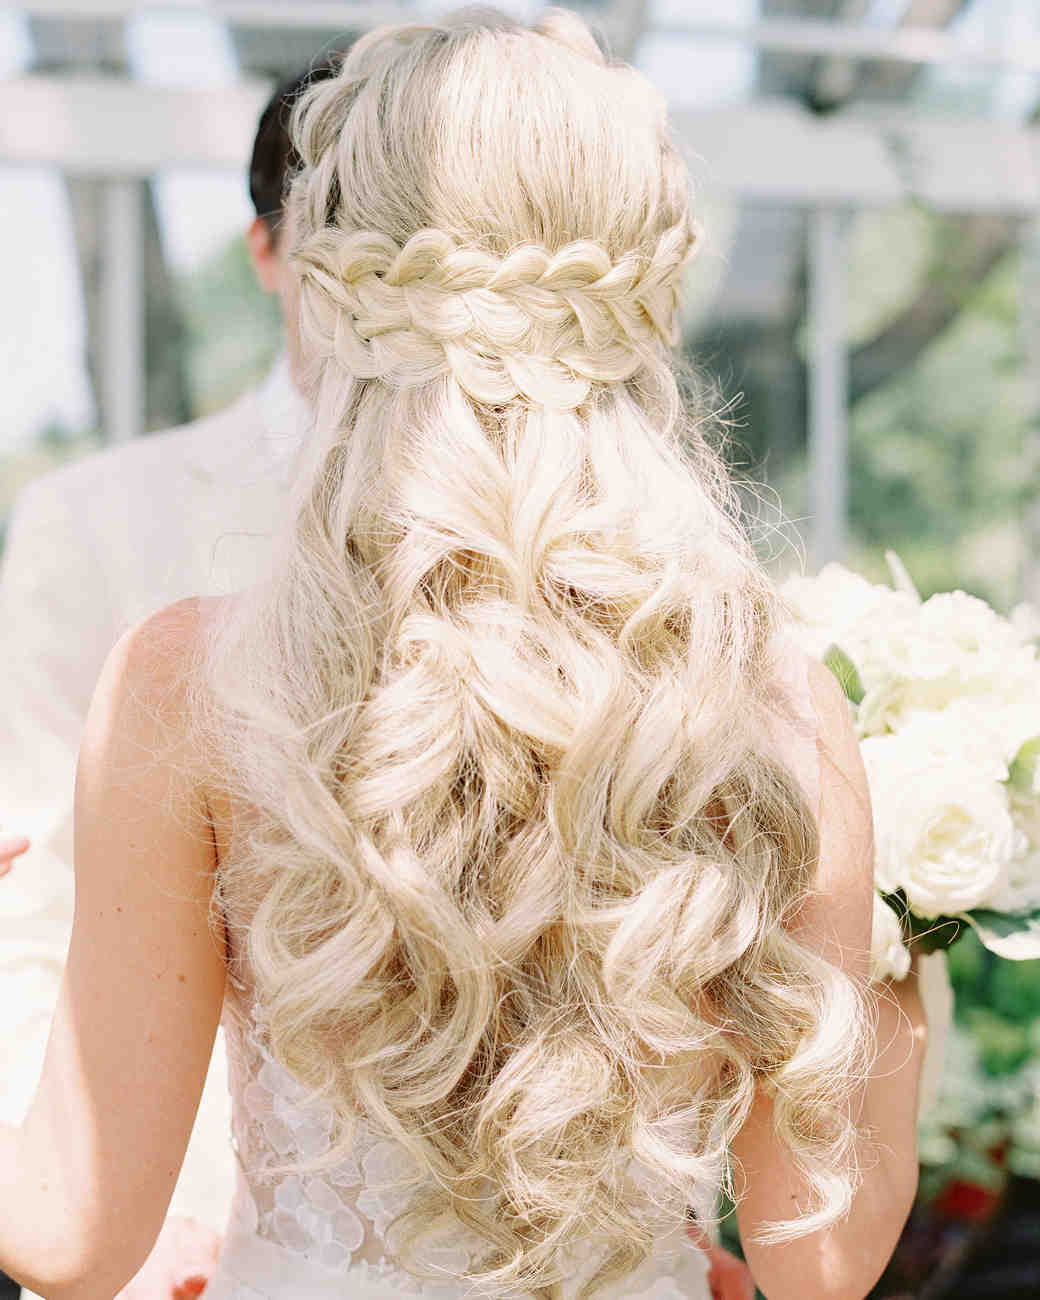 Braid Hairstyles For Wedding Party: 28 Half-Up, Half-Down Wedding Hairstyles We Love